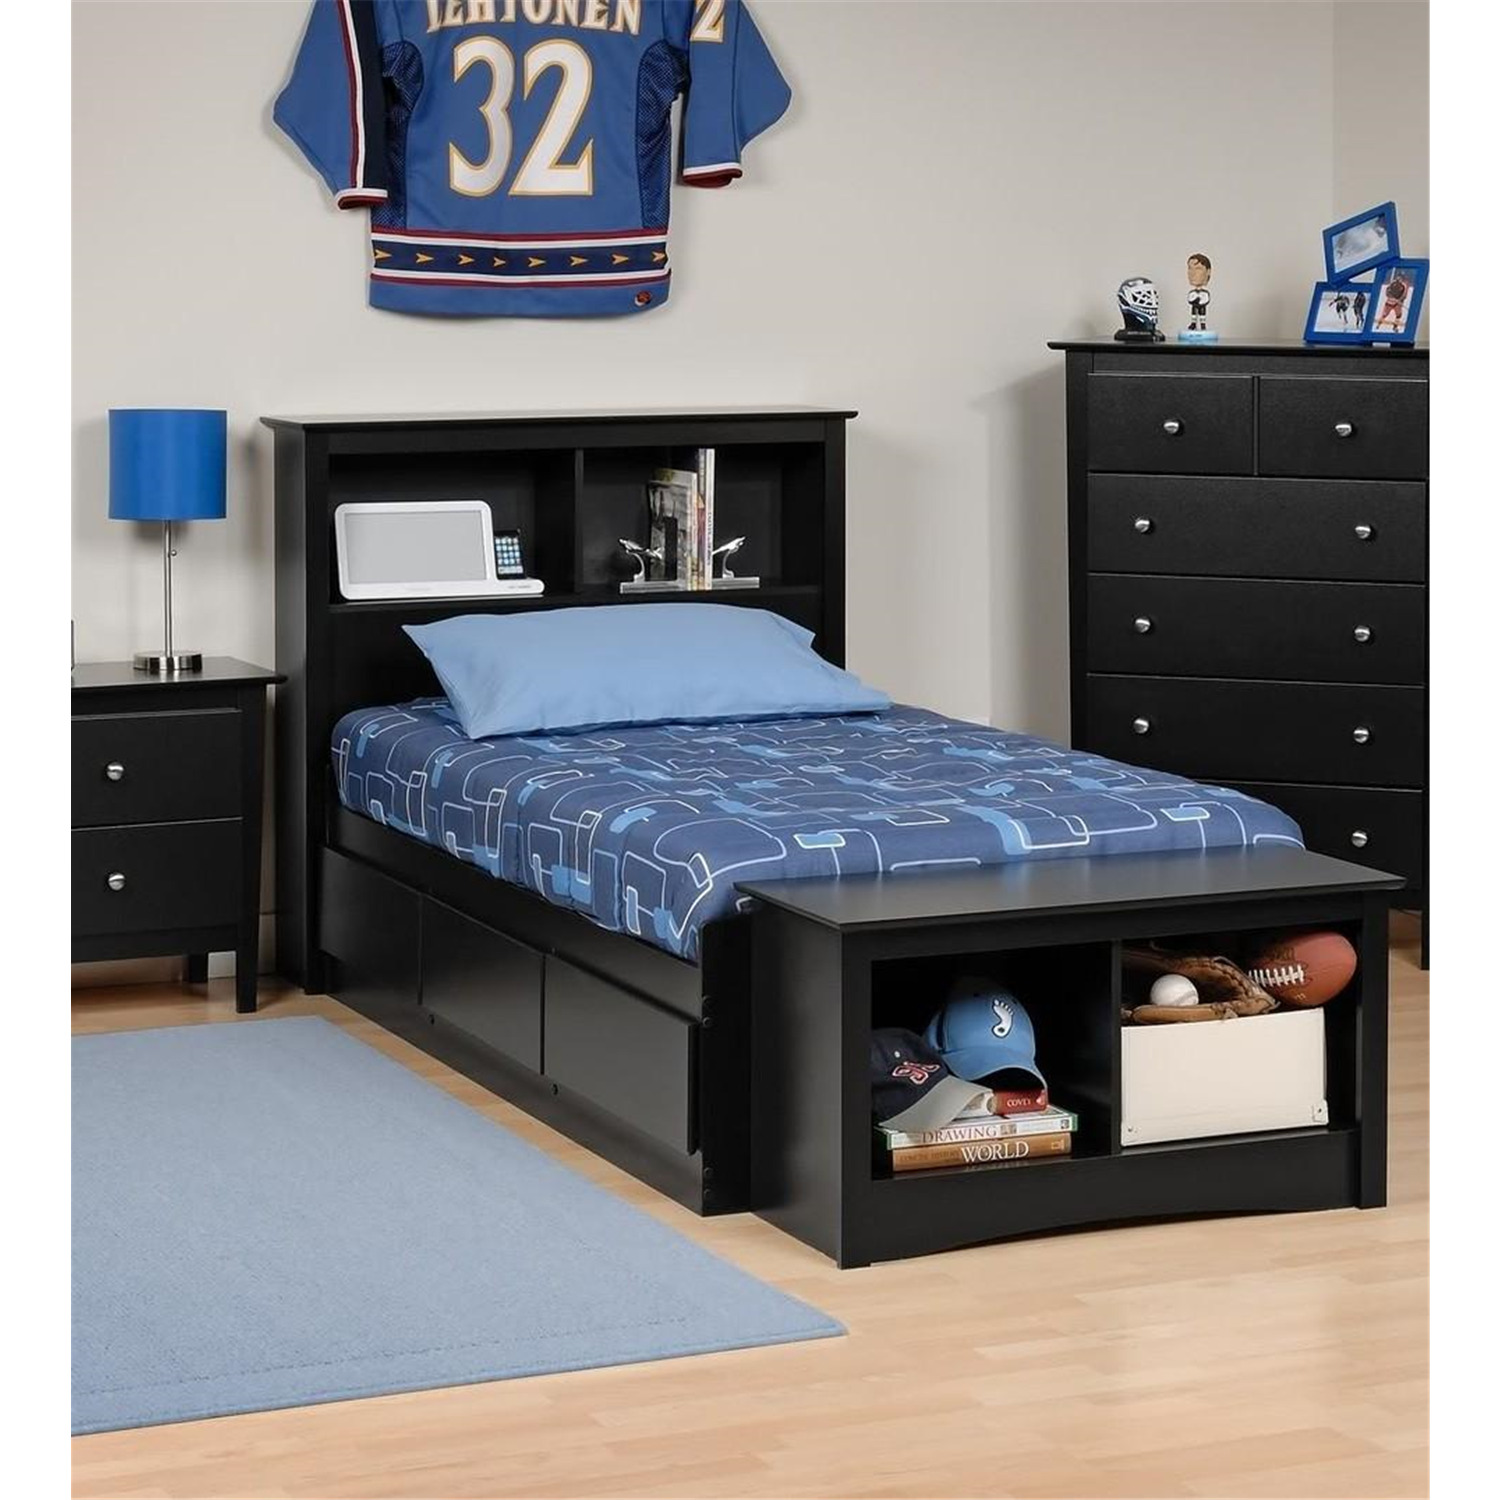 Prepac Platform Storage Bed w Bookcase Headboard Black Twin